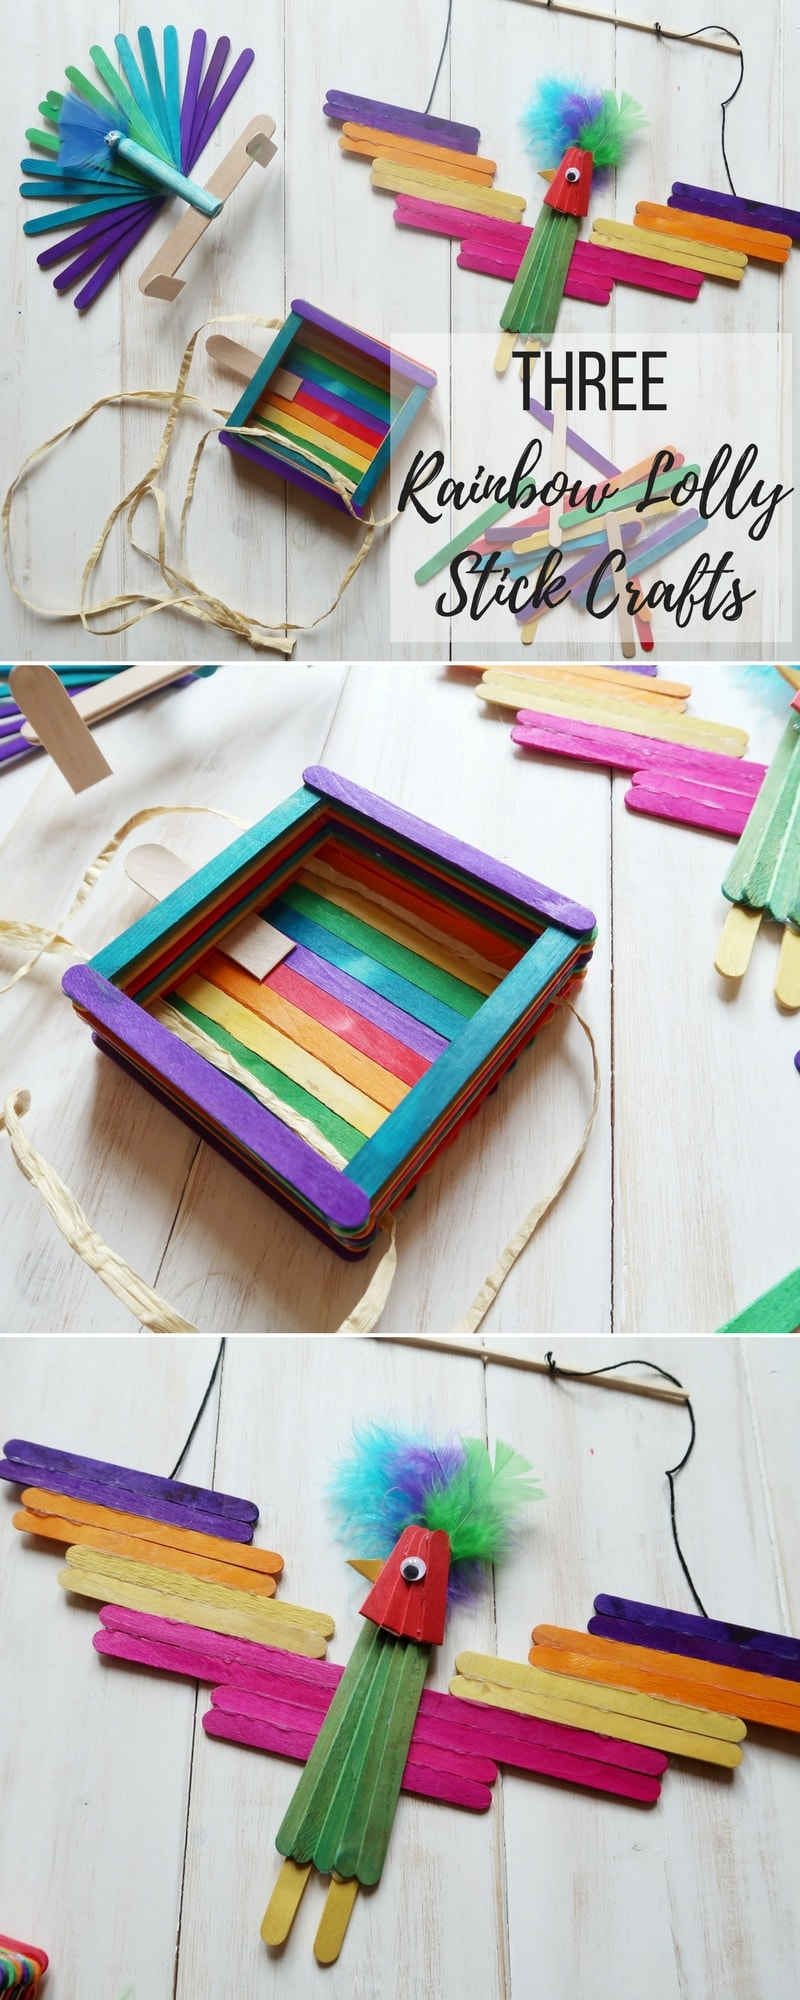 3 Rainbow Lolly Stick Crafts - A bird-feeder, a parrot decoration and a clothes peg peacock, all made with colourful popsiclelolly sticks.